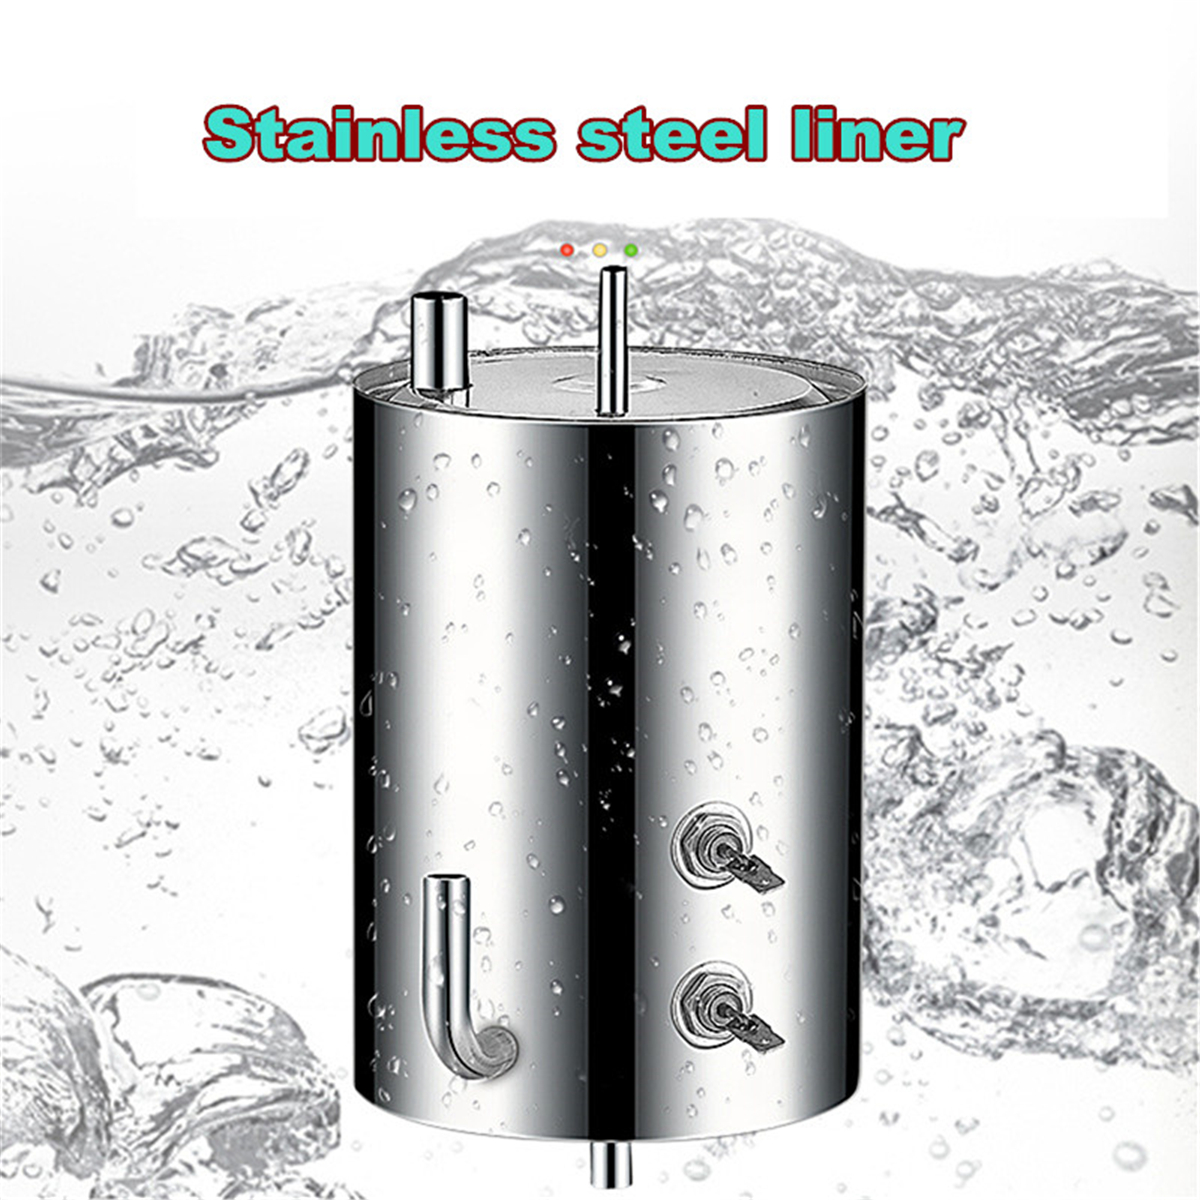 220V Water Cooler Table Top Household Mini Warm and Cold Hot Water Dispenser Beverage Dispenser